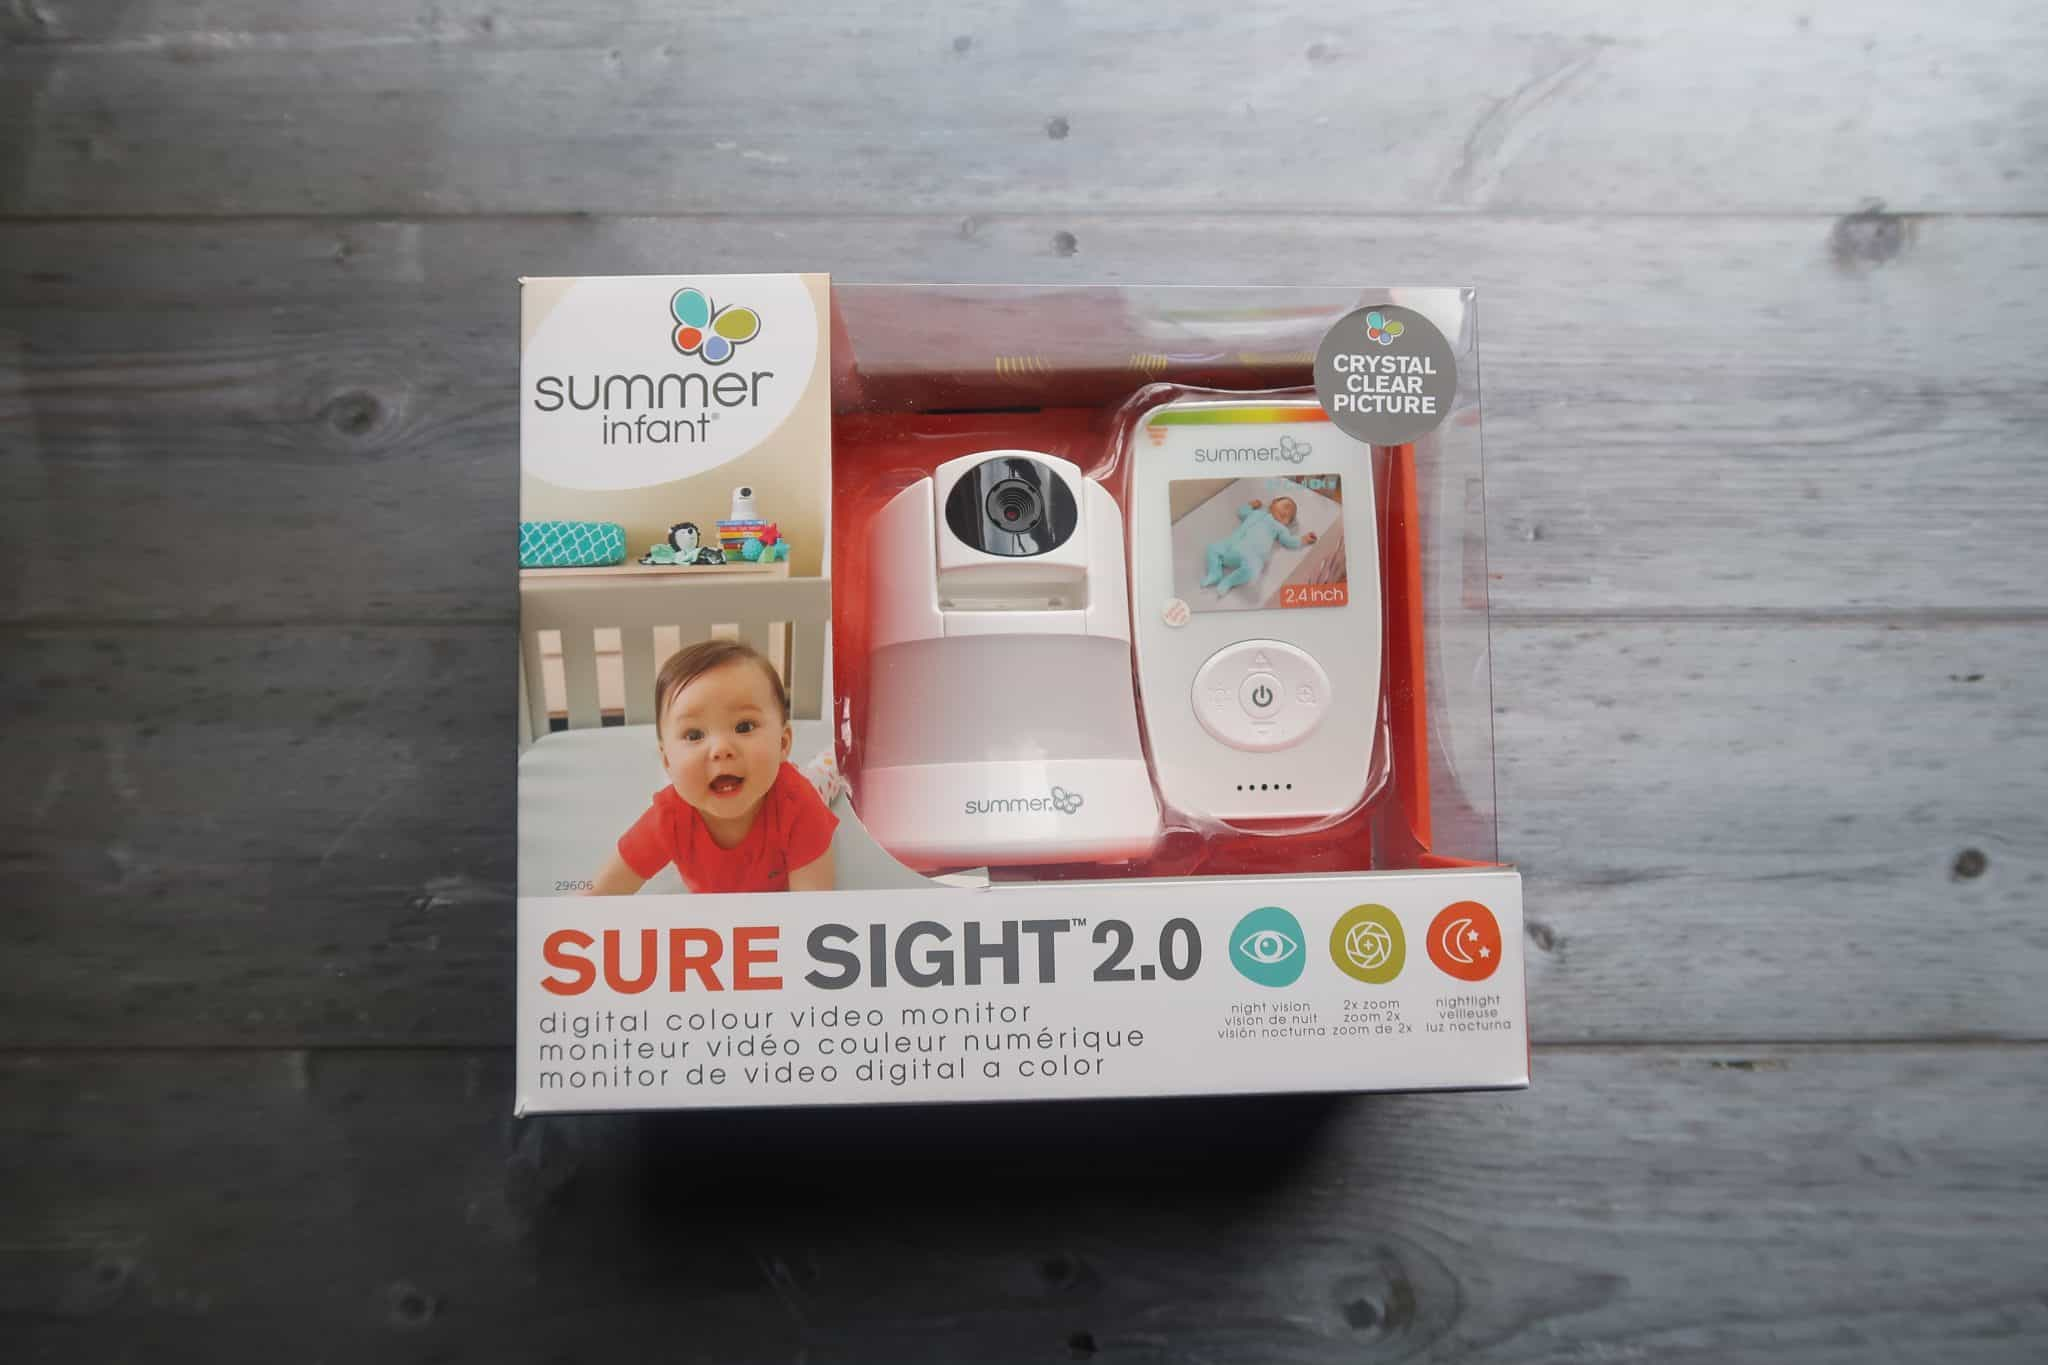 Summer Infant Sure Sight 2.0 Digital Video Baby Monitor Review